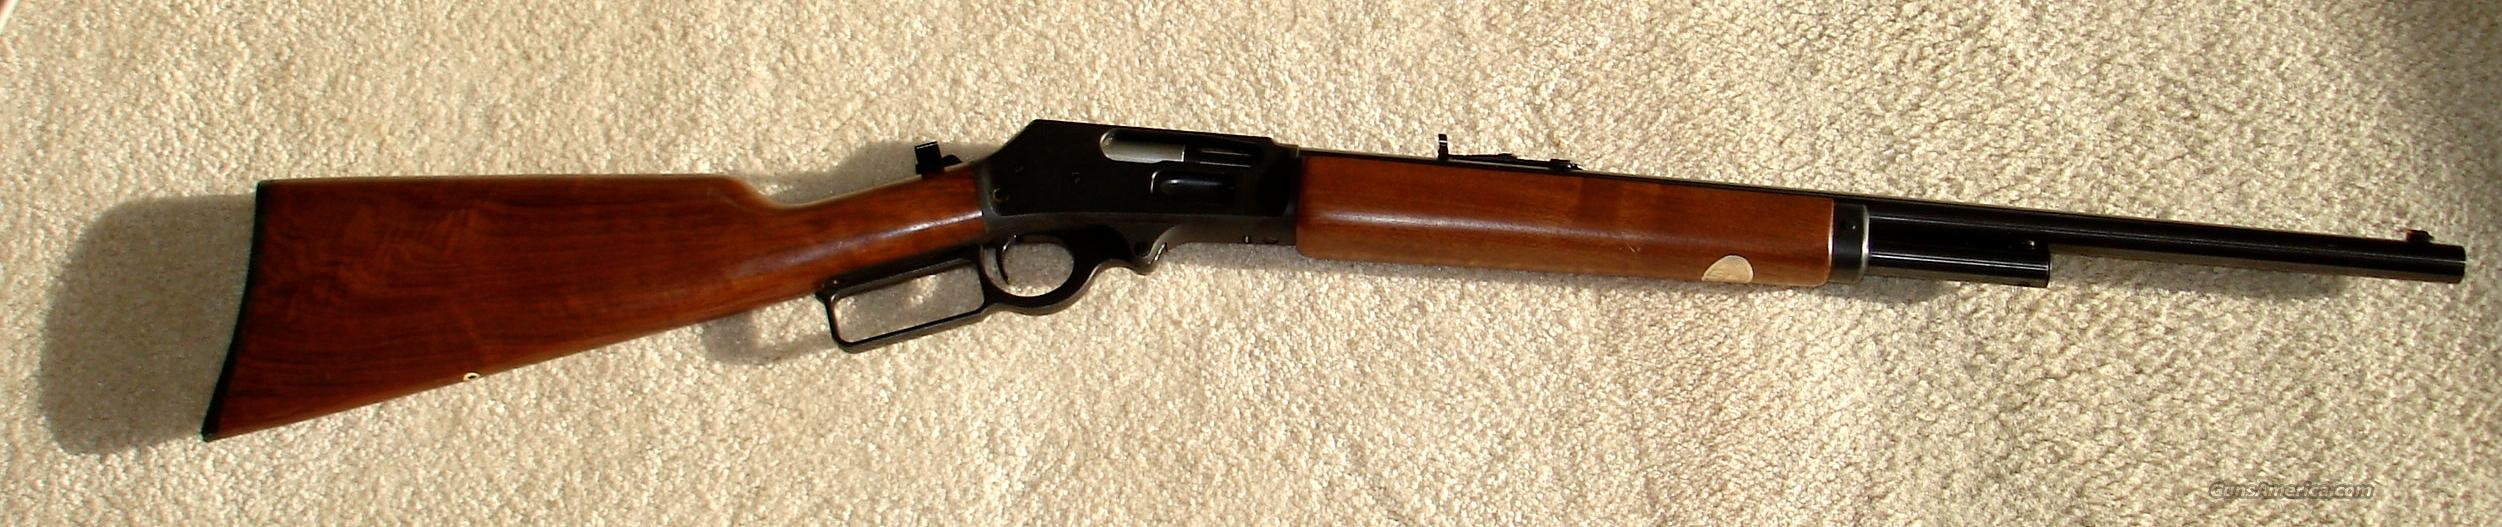 Marlin Model 1895 45/70 Government manufactured 1972  Guns > Rifles > Marlin Rifles > Modern > Lever Action